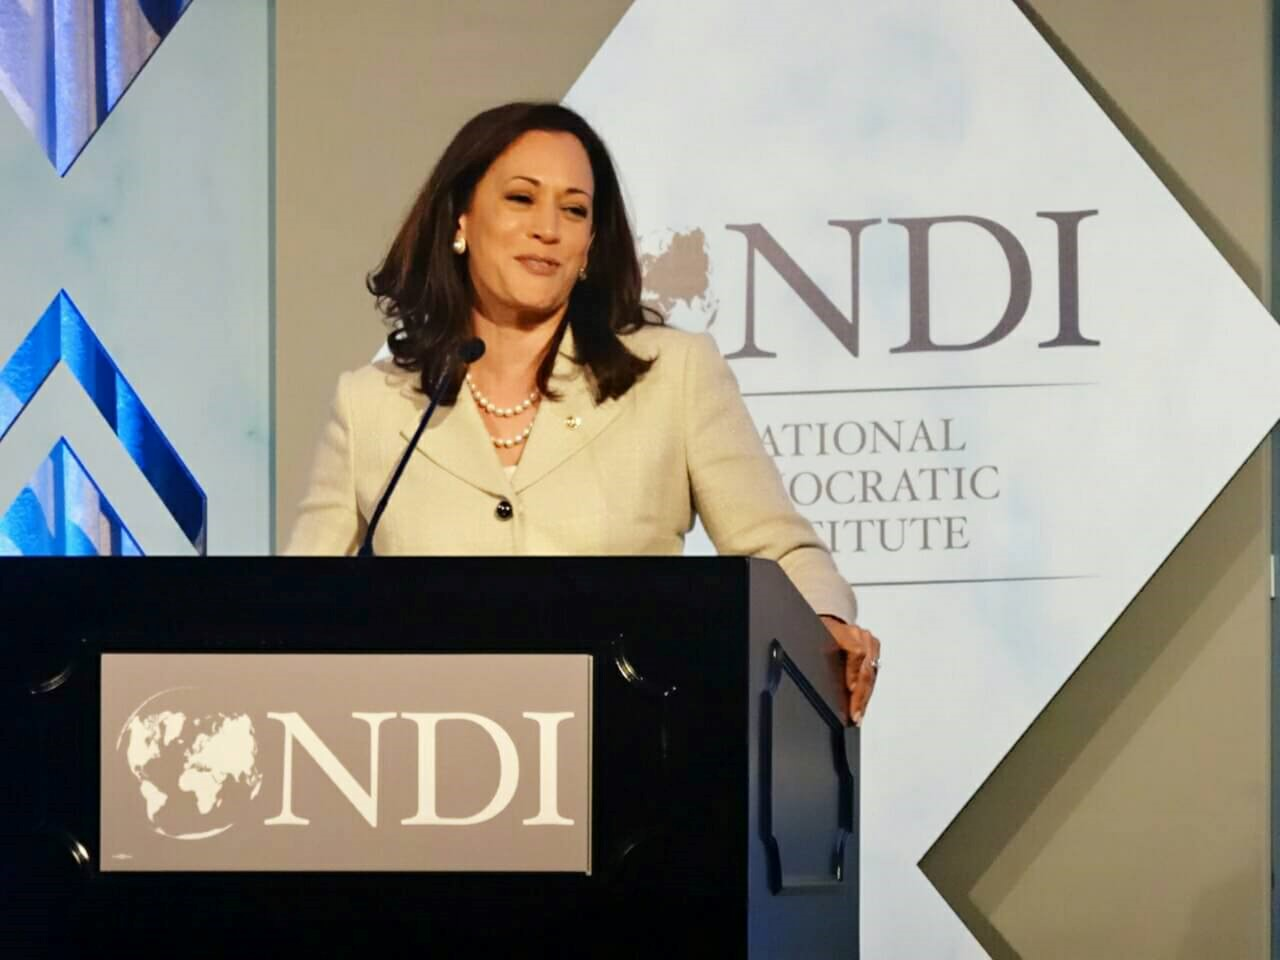 Kamala Harris: They told me, 'It's not your turn,' 'it's not right time,' and 'I did not listen'